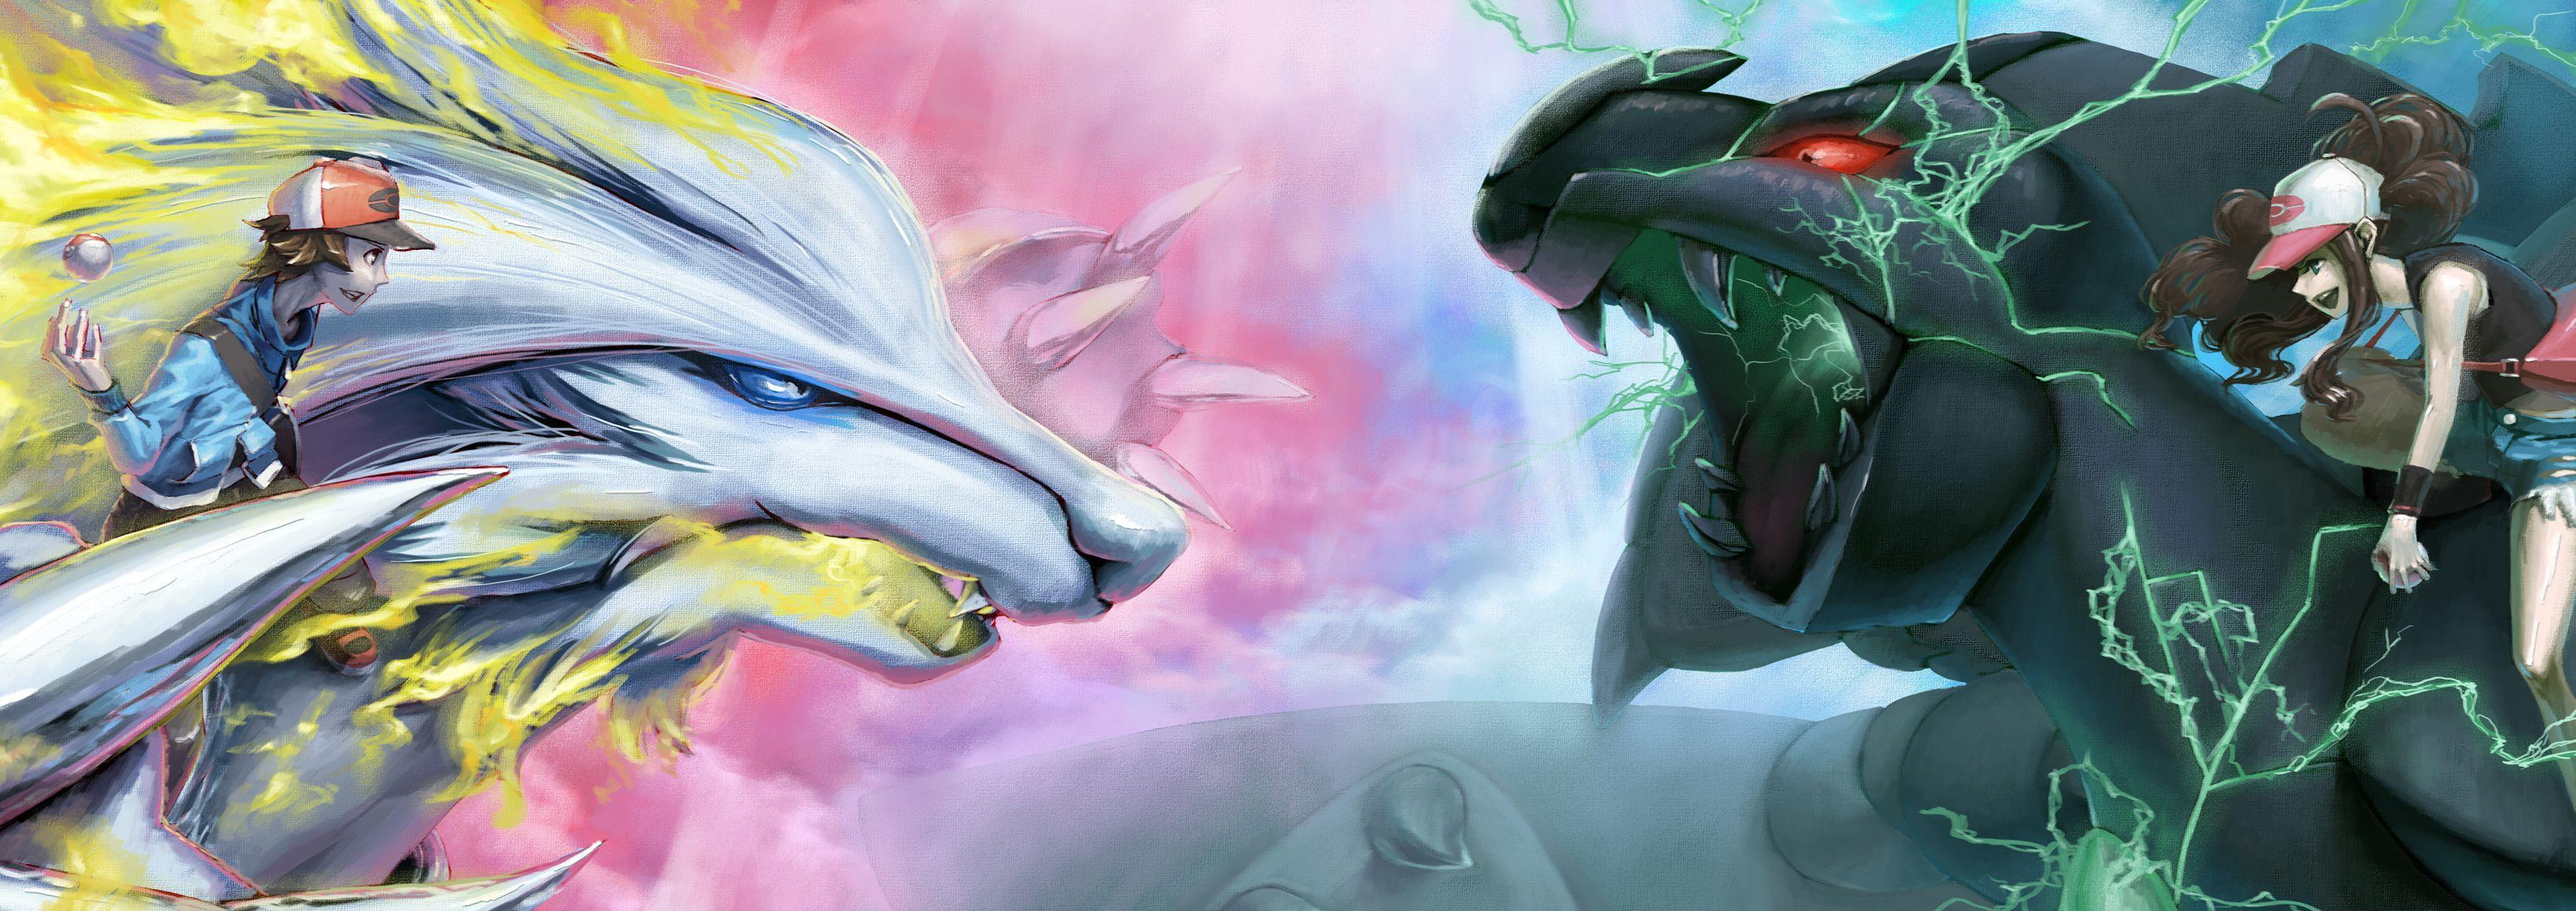 Reshiram Vs Zekrom HD Wallpaper | Background Image | 3508x1240 | ID ...